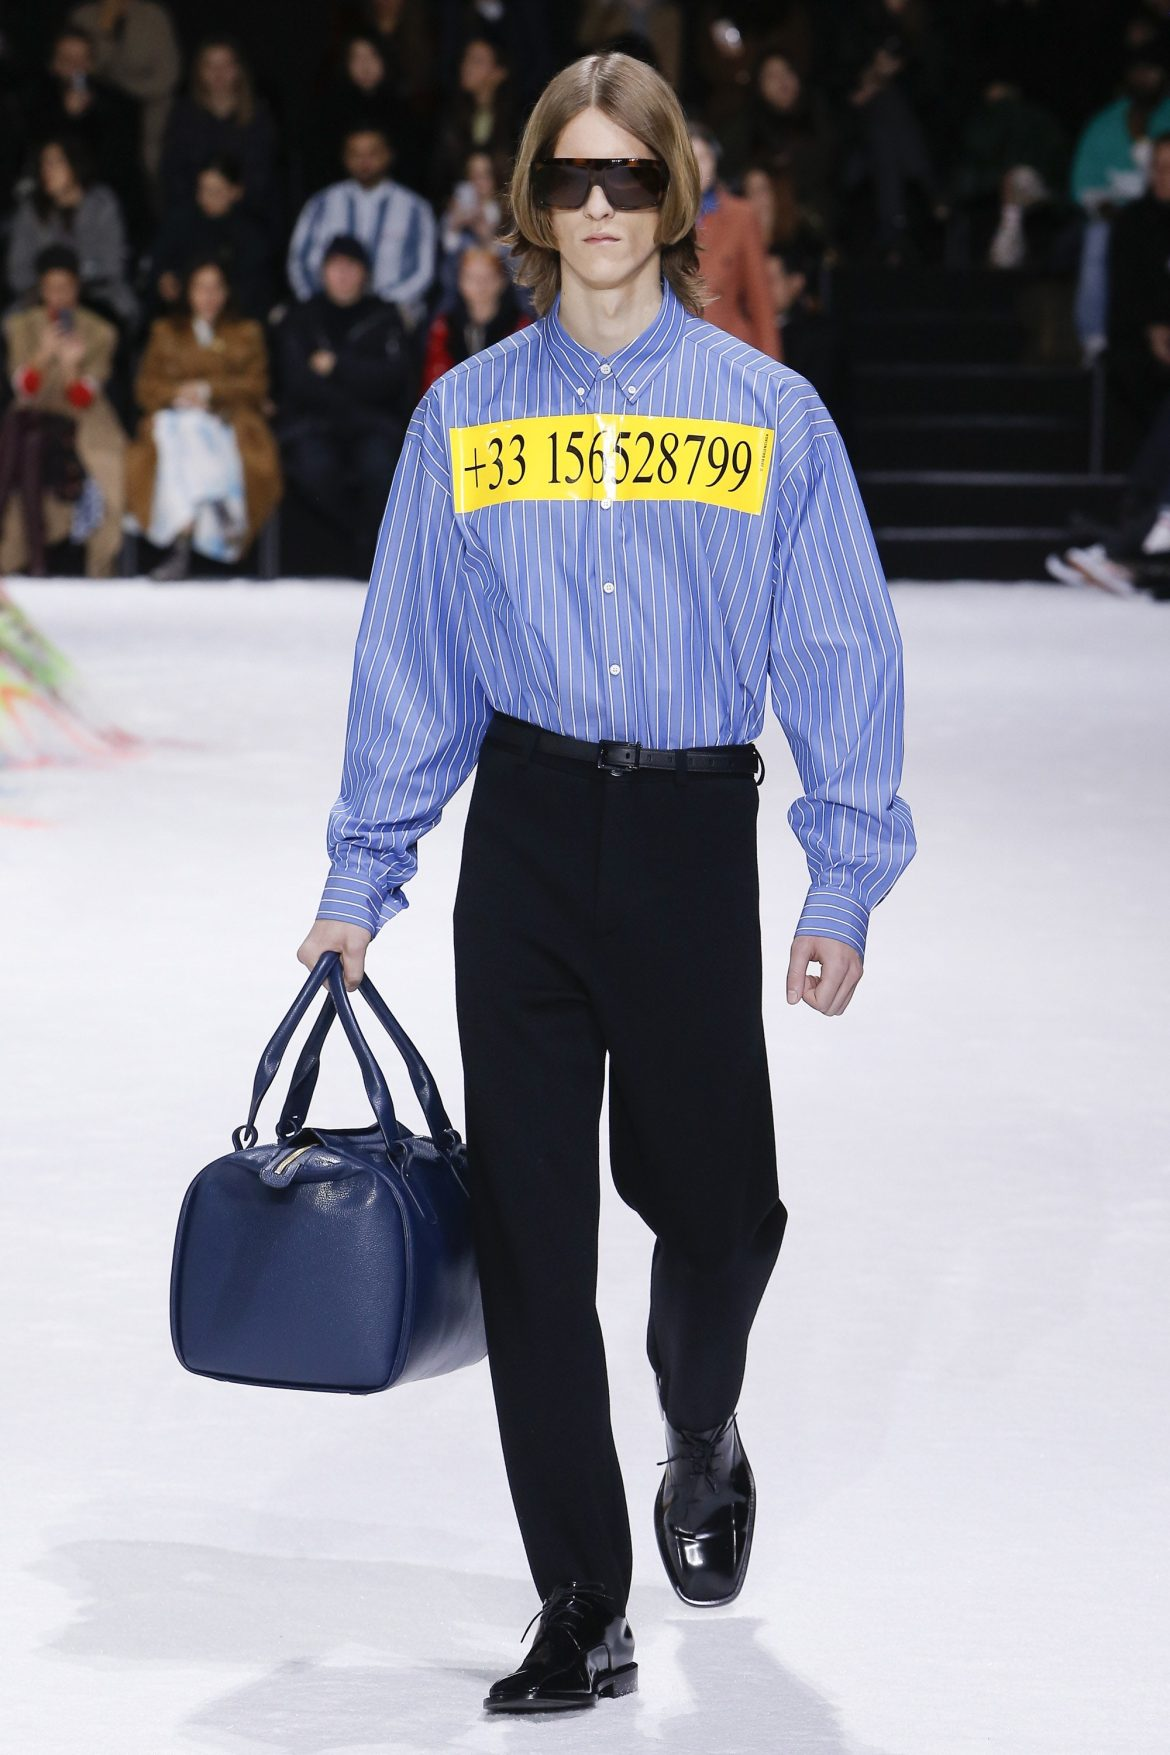 A Review Of 12 High End Fashion Brands Recent Lines